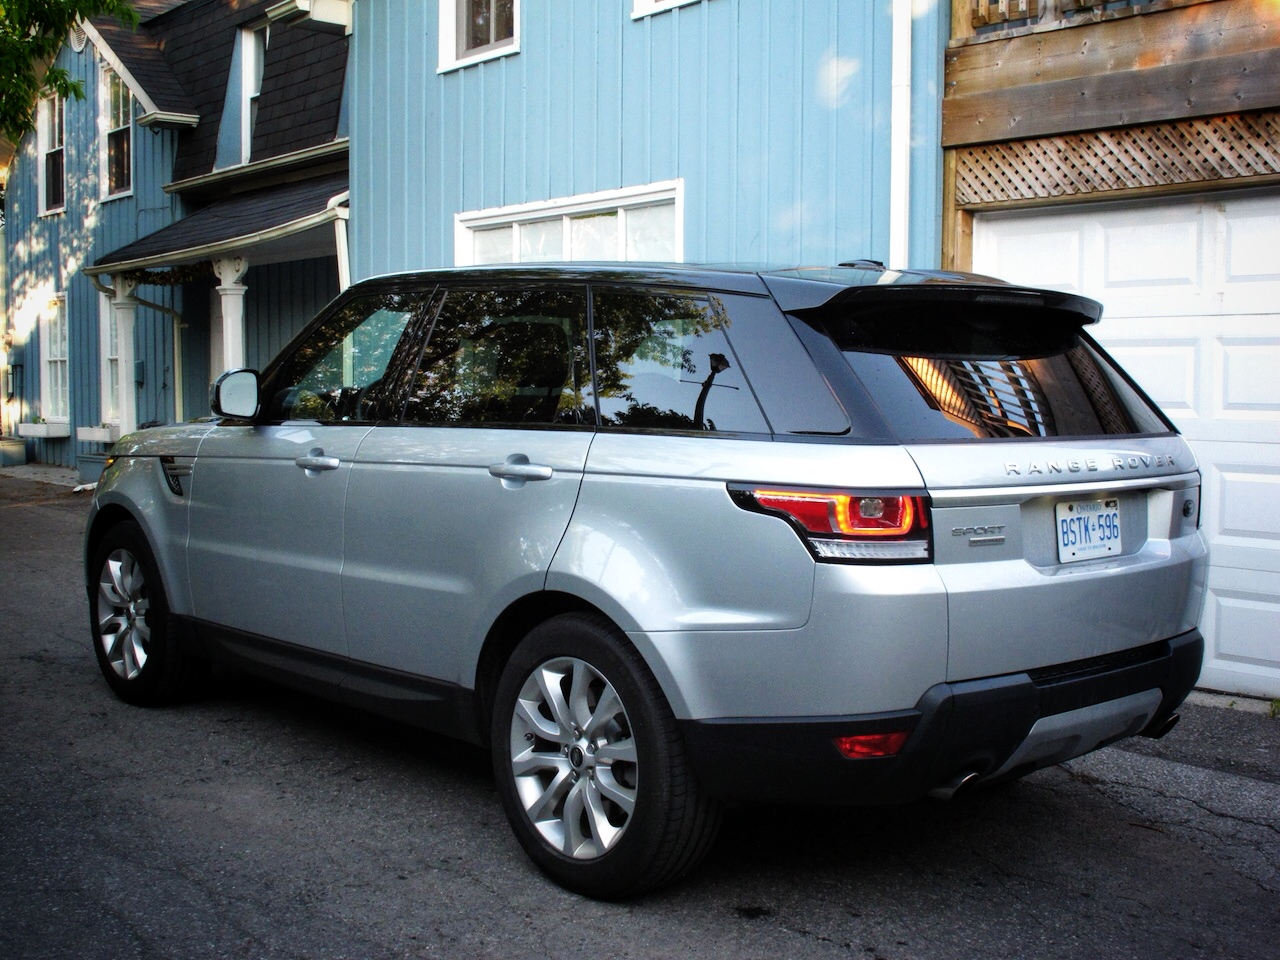 2014 range rover sport v8 review cars photos test drives and reviews canadian auto review. Black Bedroom Furniture Sets. Home Design Ideas